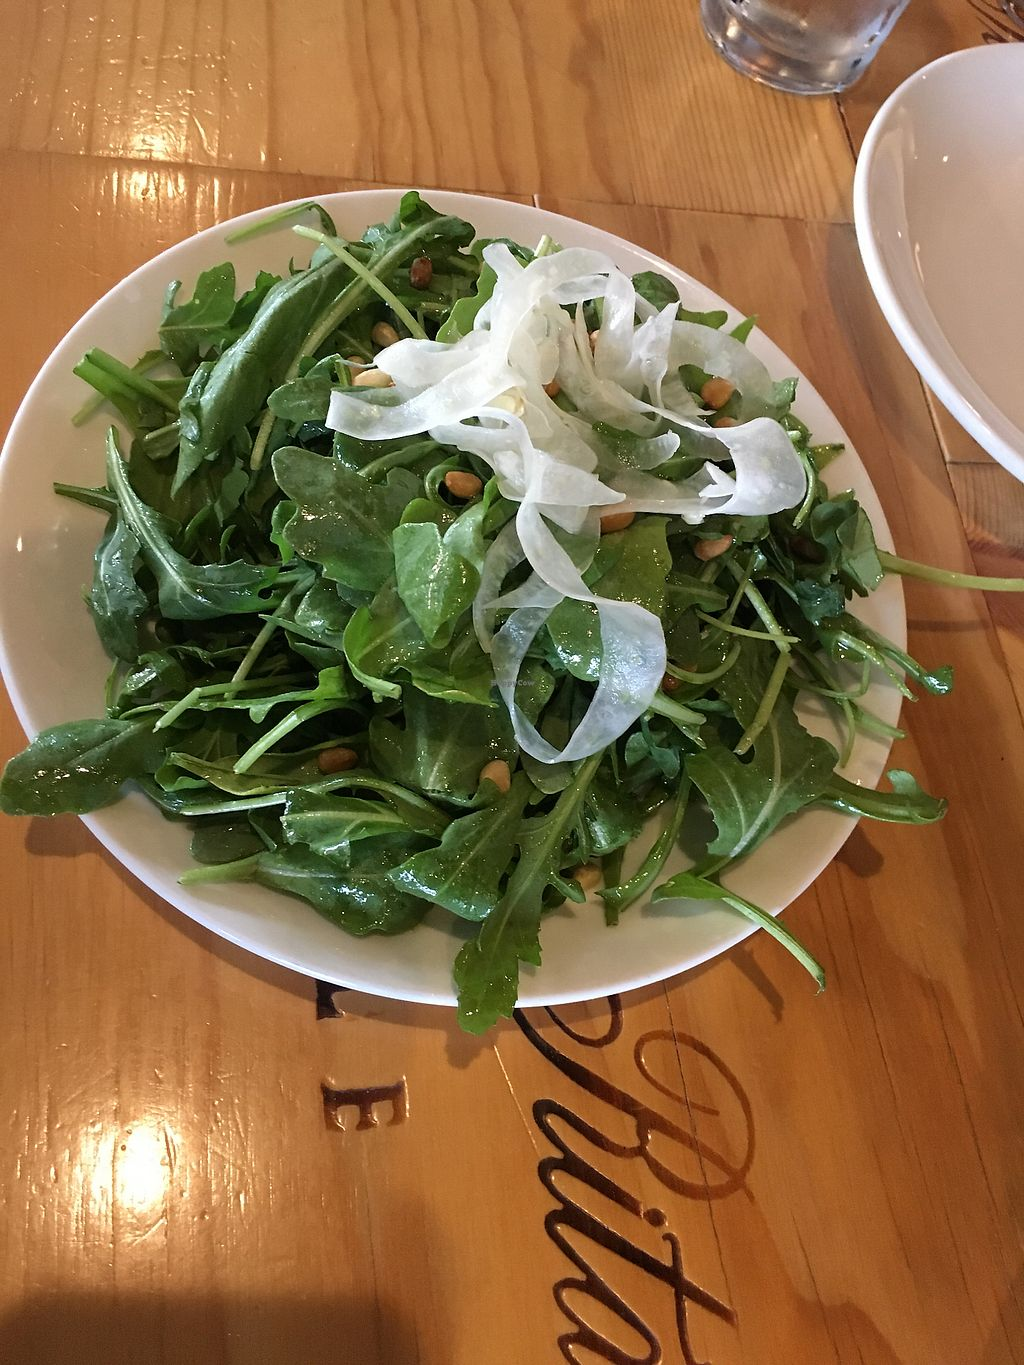 "Photo of Humble Wine Bar  by <a href=""/members/profile/veganrosebud"">veganrosebud</a> <br/>Arugula salad, hold the cheese! <br/> July 18, 2017  - <a href='/contact/abuse/image/61032/281651'>Report</a>"